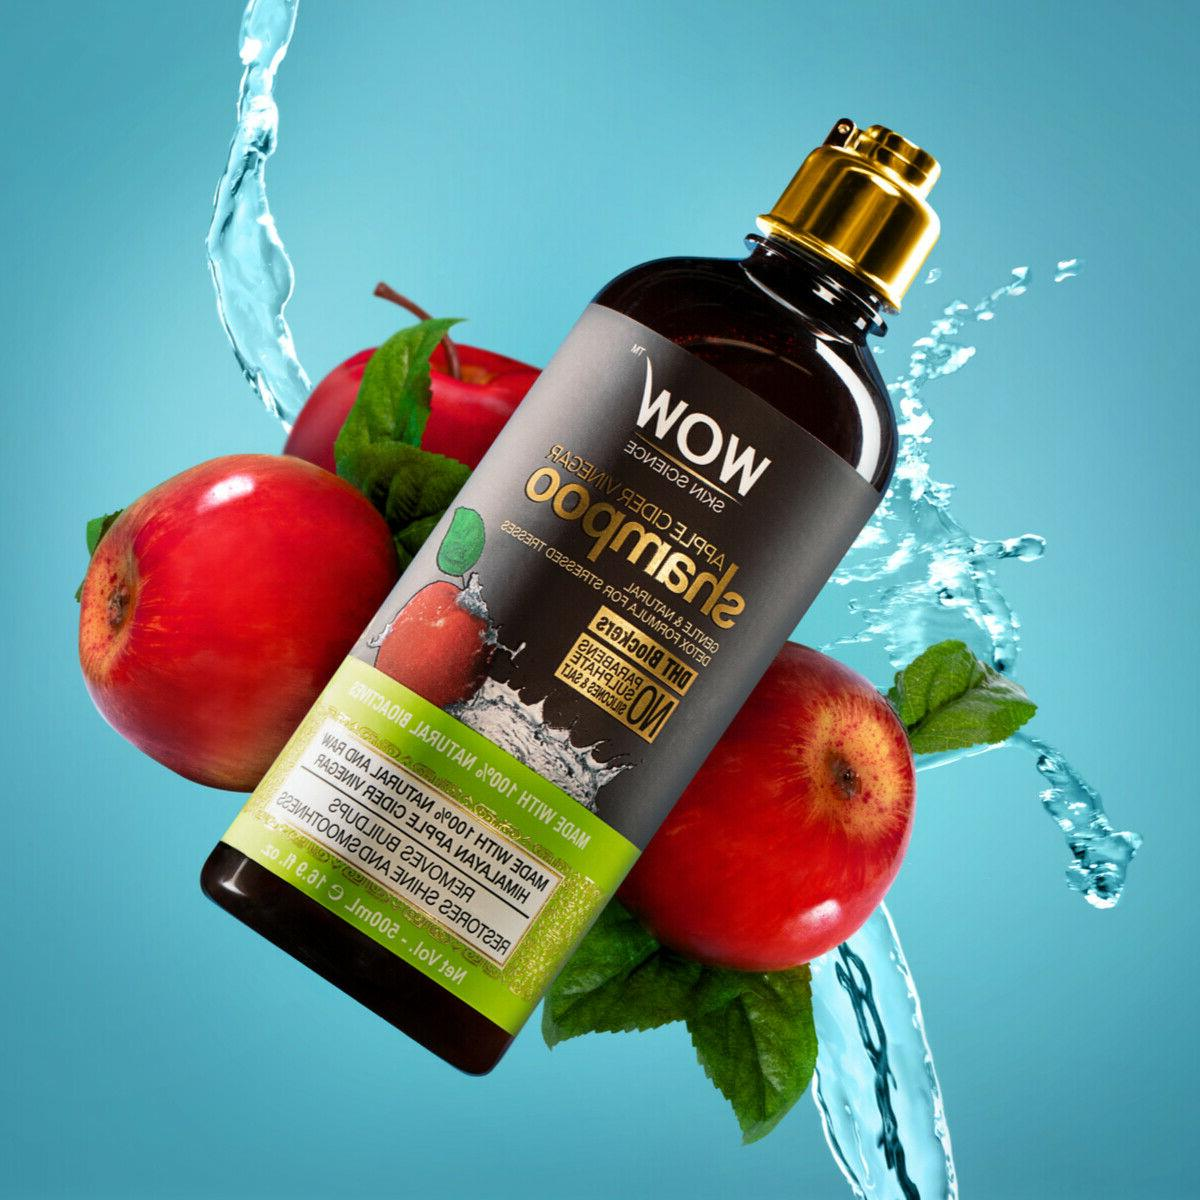 WOW Cider Shampoo For Hair - - 16.9